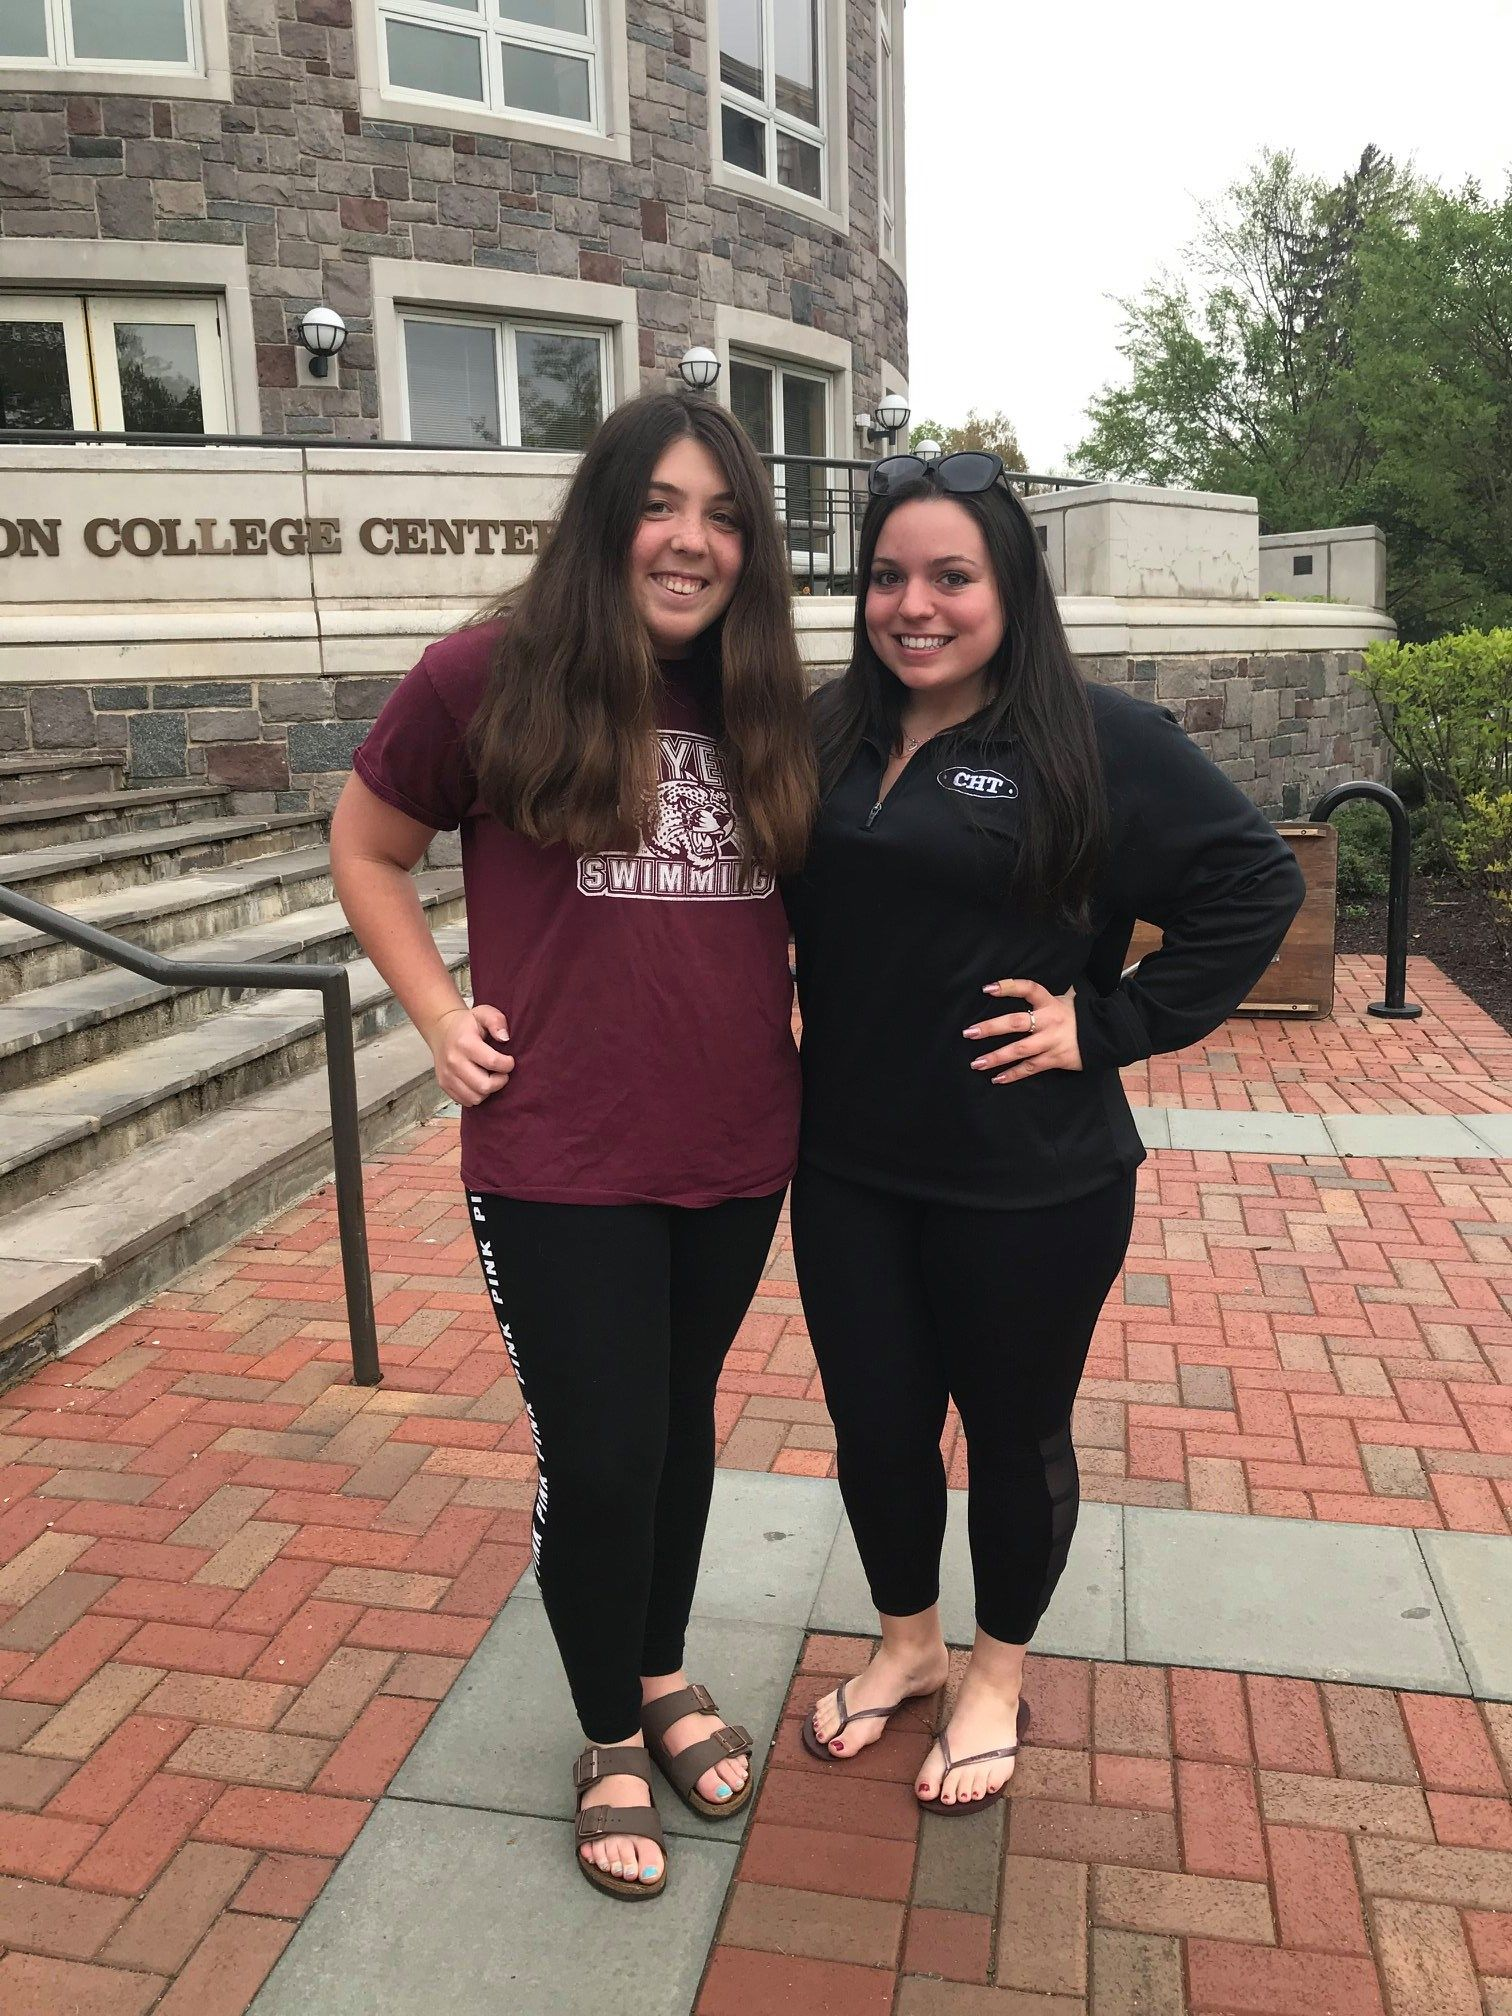 Greetings from Lauren Gerber '18 & Adrianna DiMarco '16 at Lafayette College!